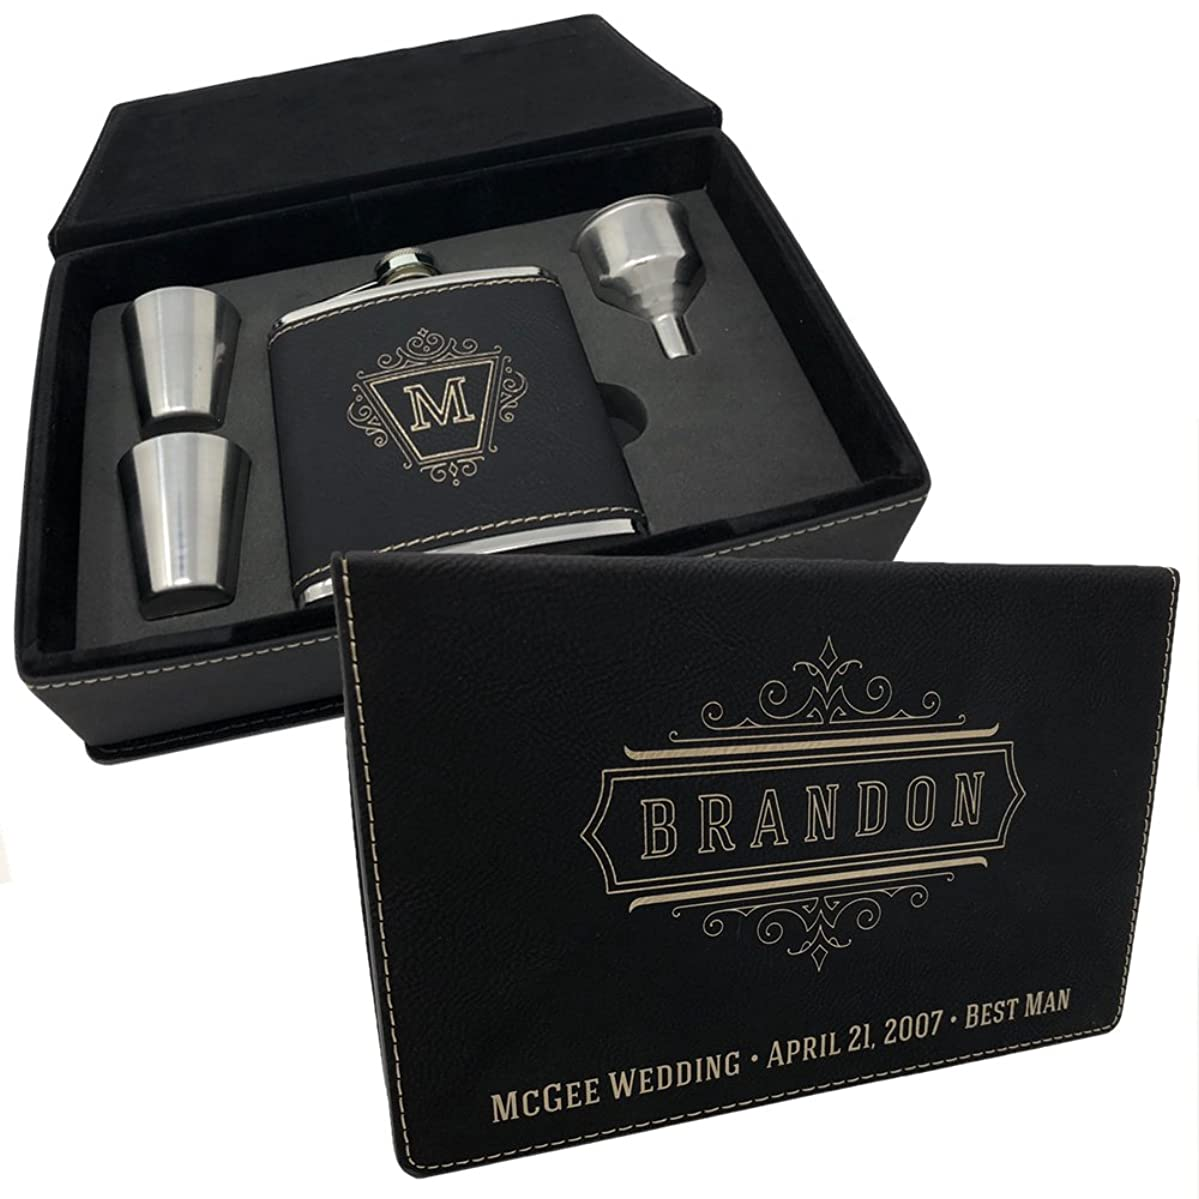 Personalized Leatherette Flask Set - Free Engraving on leather gift box and flask (Black w/ Silver Engraving)